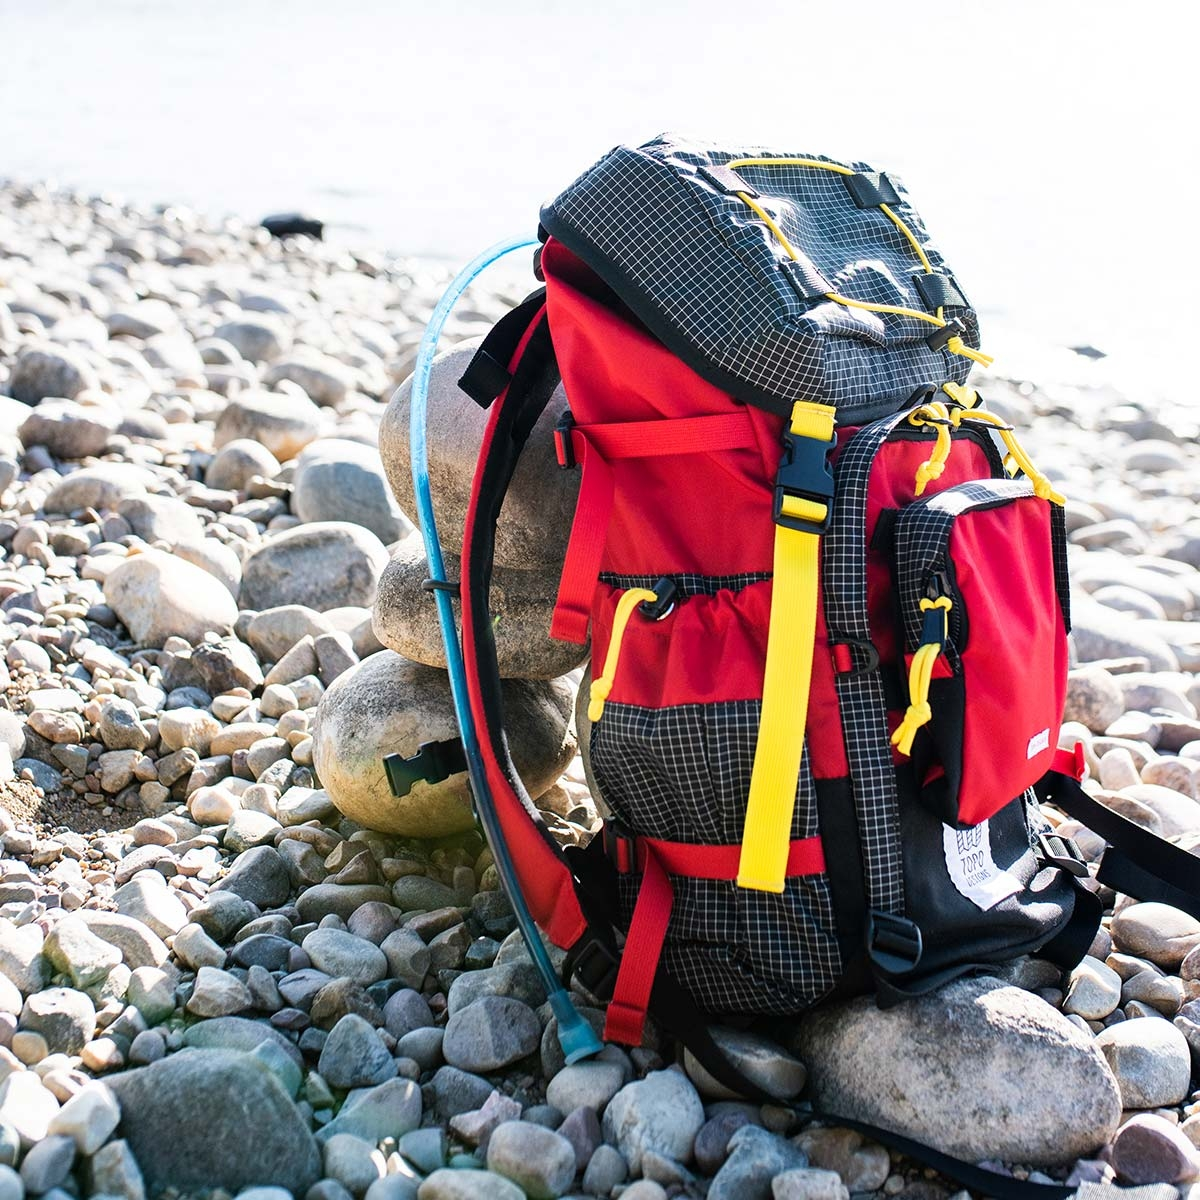 Topo Designs Topo Designs Subalpine Pack, INTENTIONALLY DESIGNED TO STAND OUT